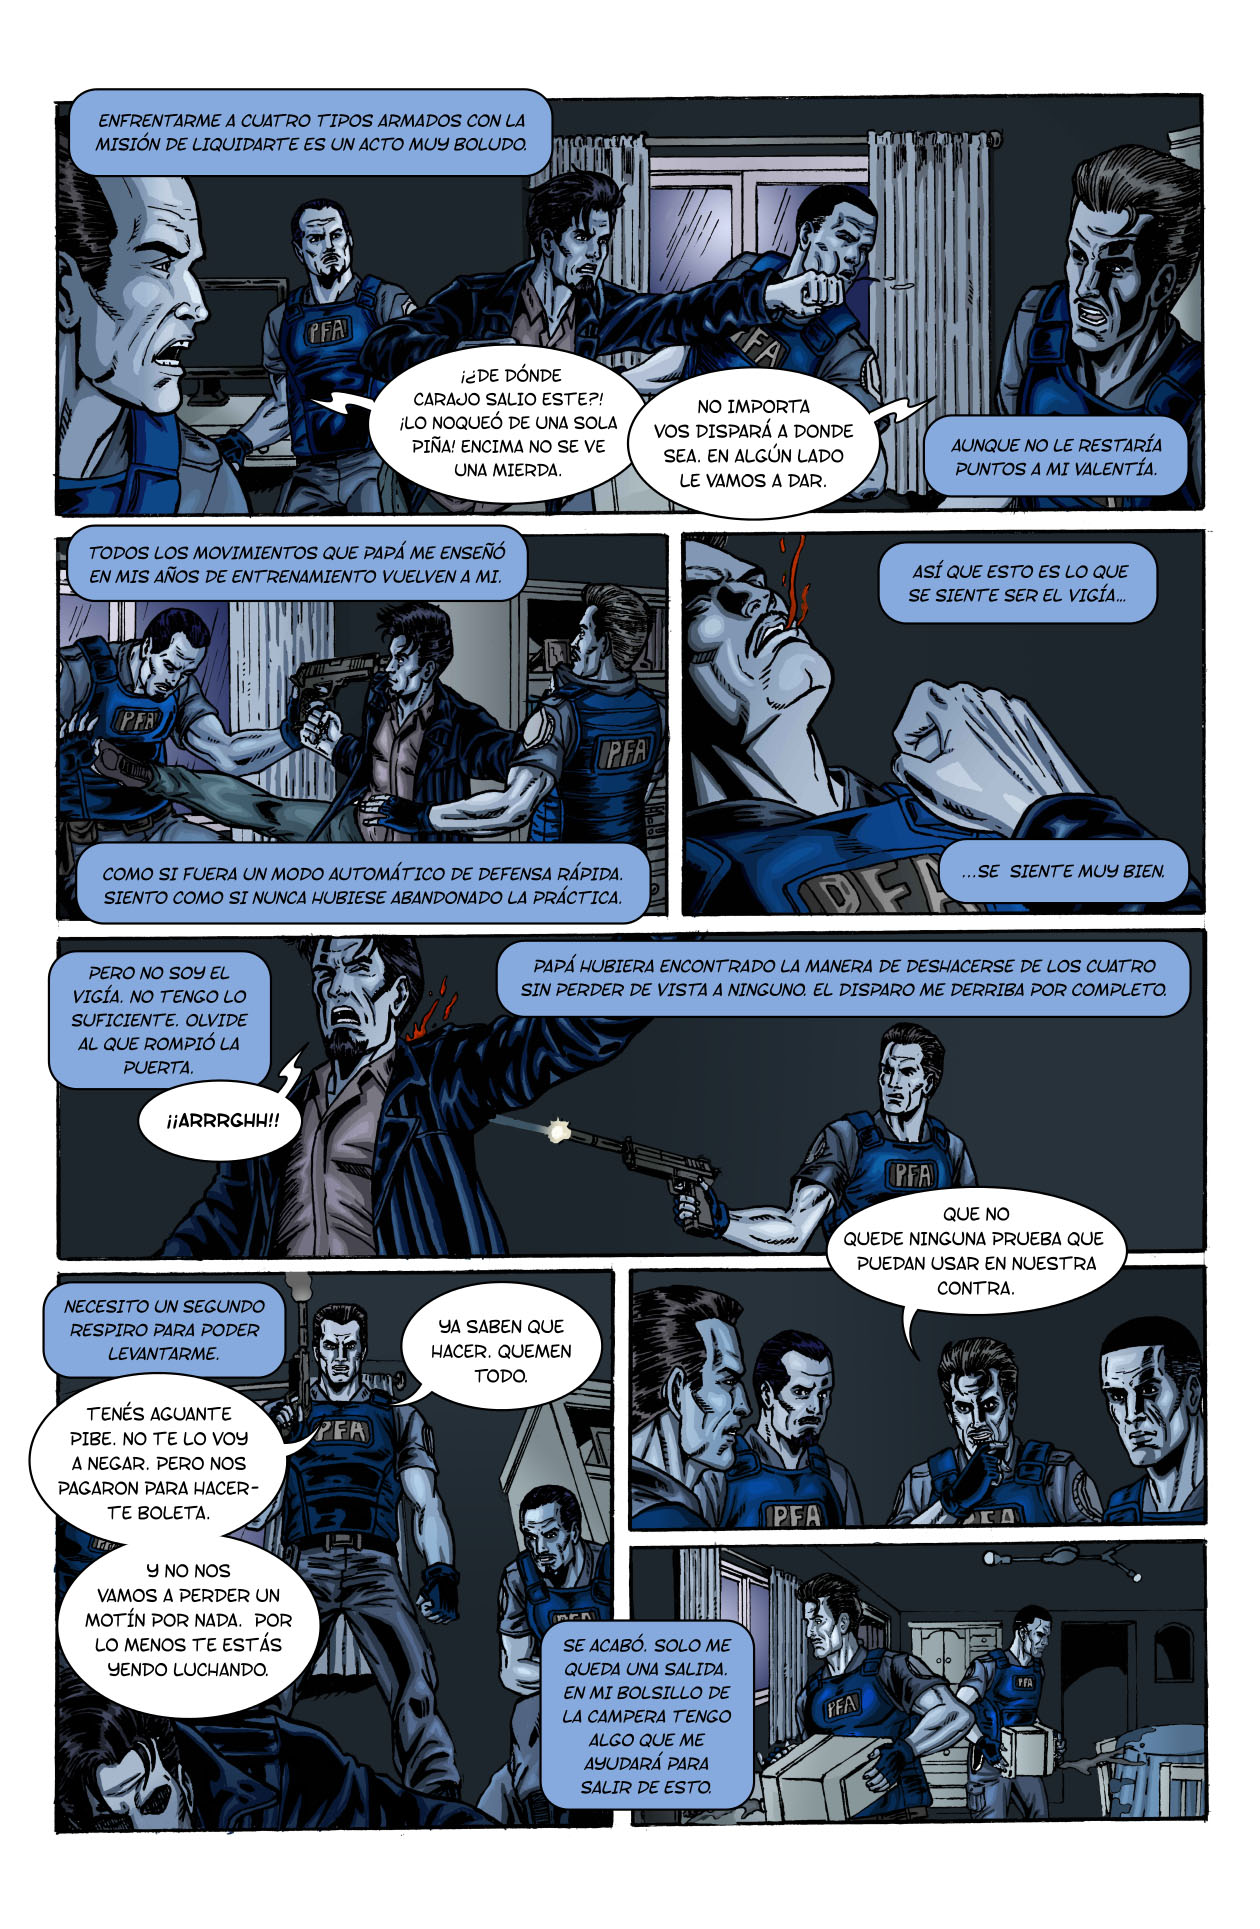 ElVigia-issue-01-page-22